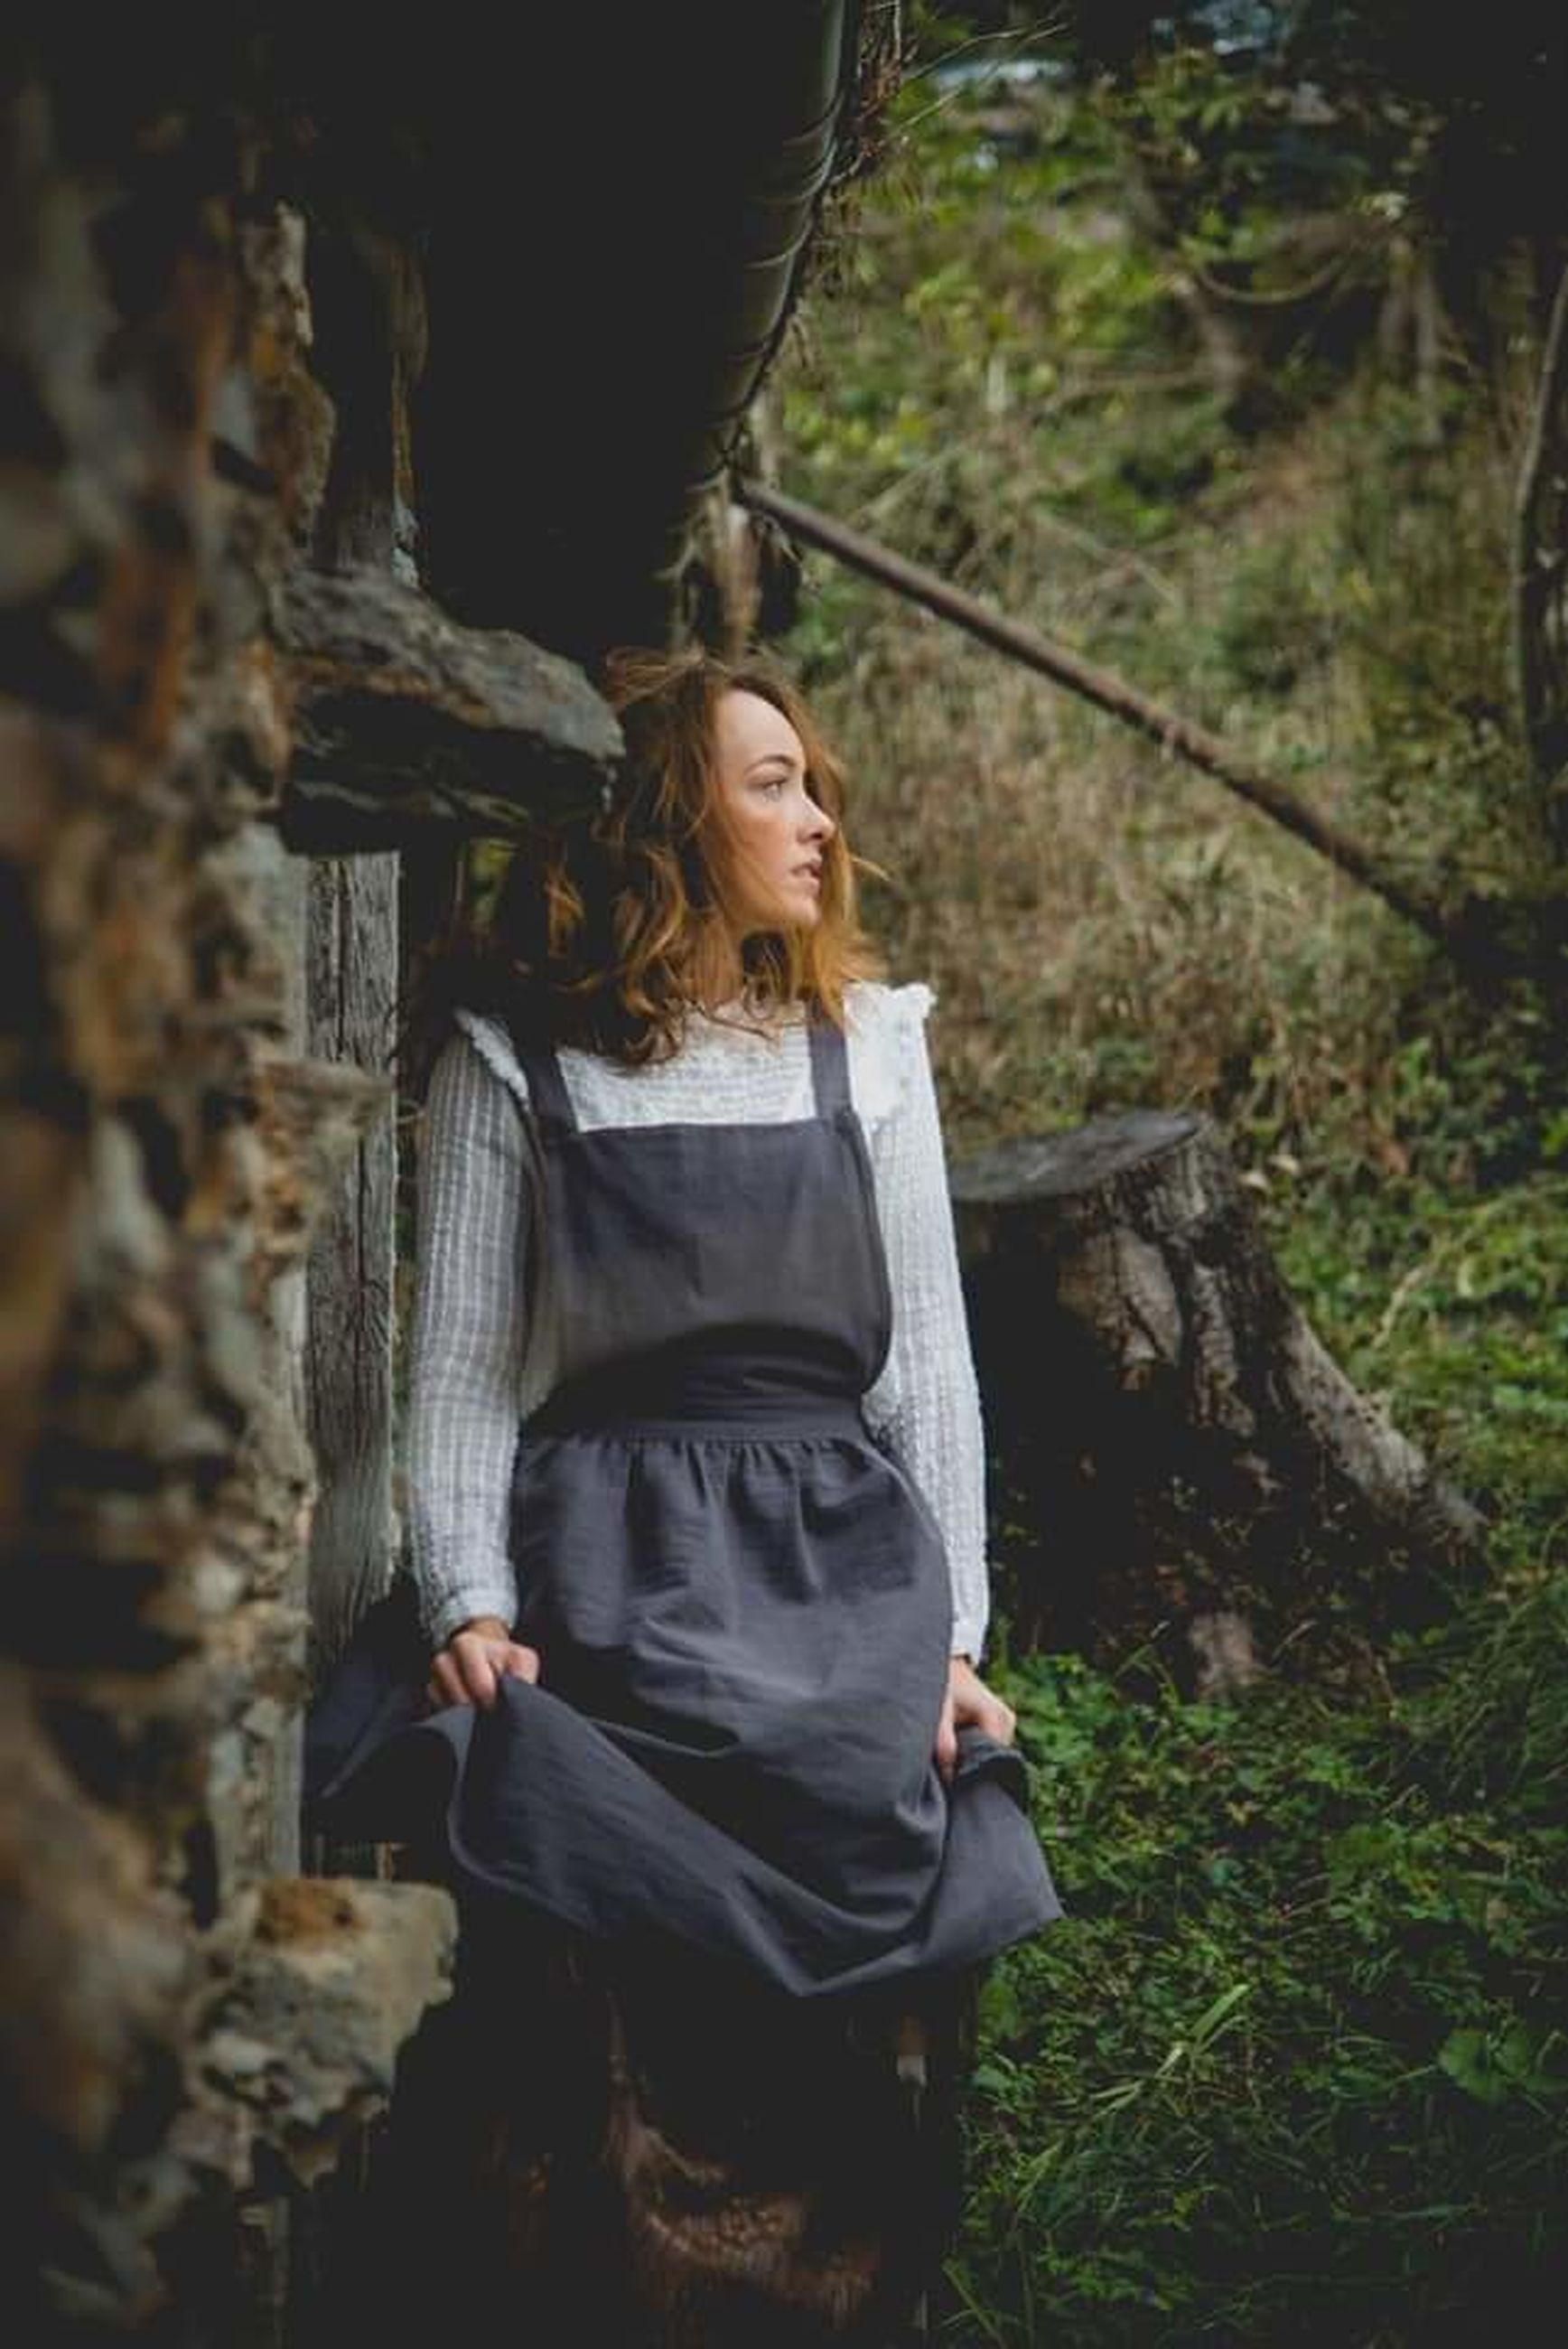 one person, adult, women, forest, tree, plant, nature, land, young adult, female, standing, woodland, lifestyles, three quarter length, leisure activity, outdoors, clothing, looking, person, dress, adventure, hairstyle, contemplation, spring, serious, portrait, beauty in nature, tranquility, front view, photo shoot, fashion, tree trunk, solitude